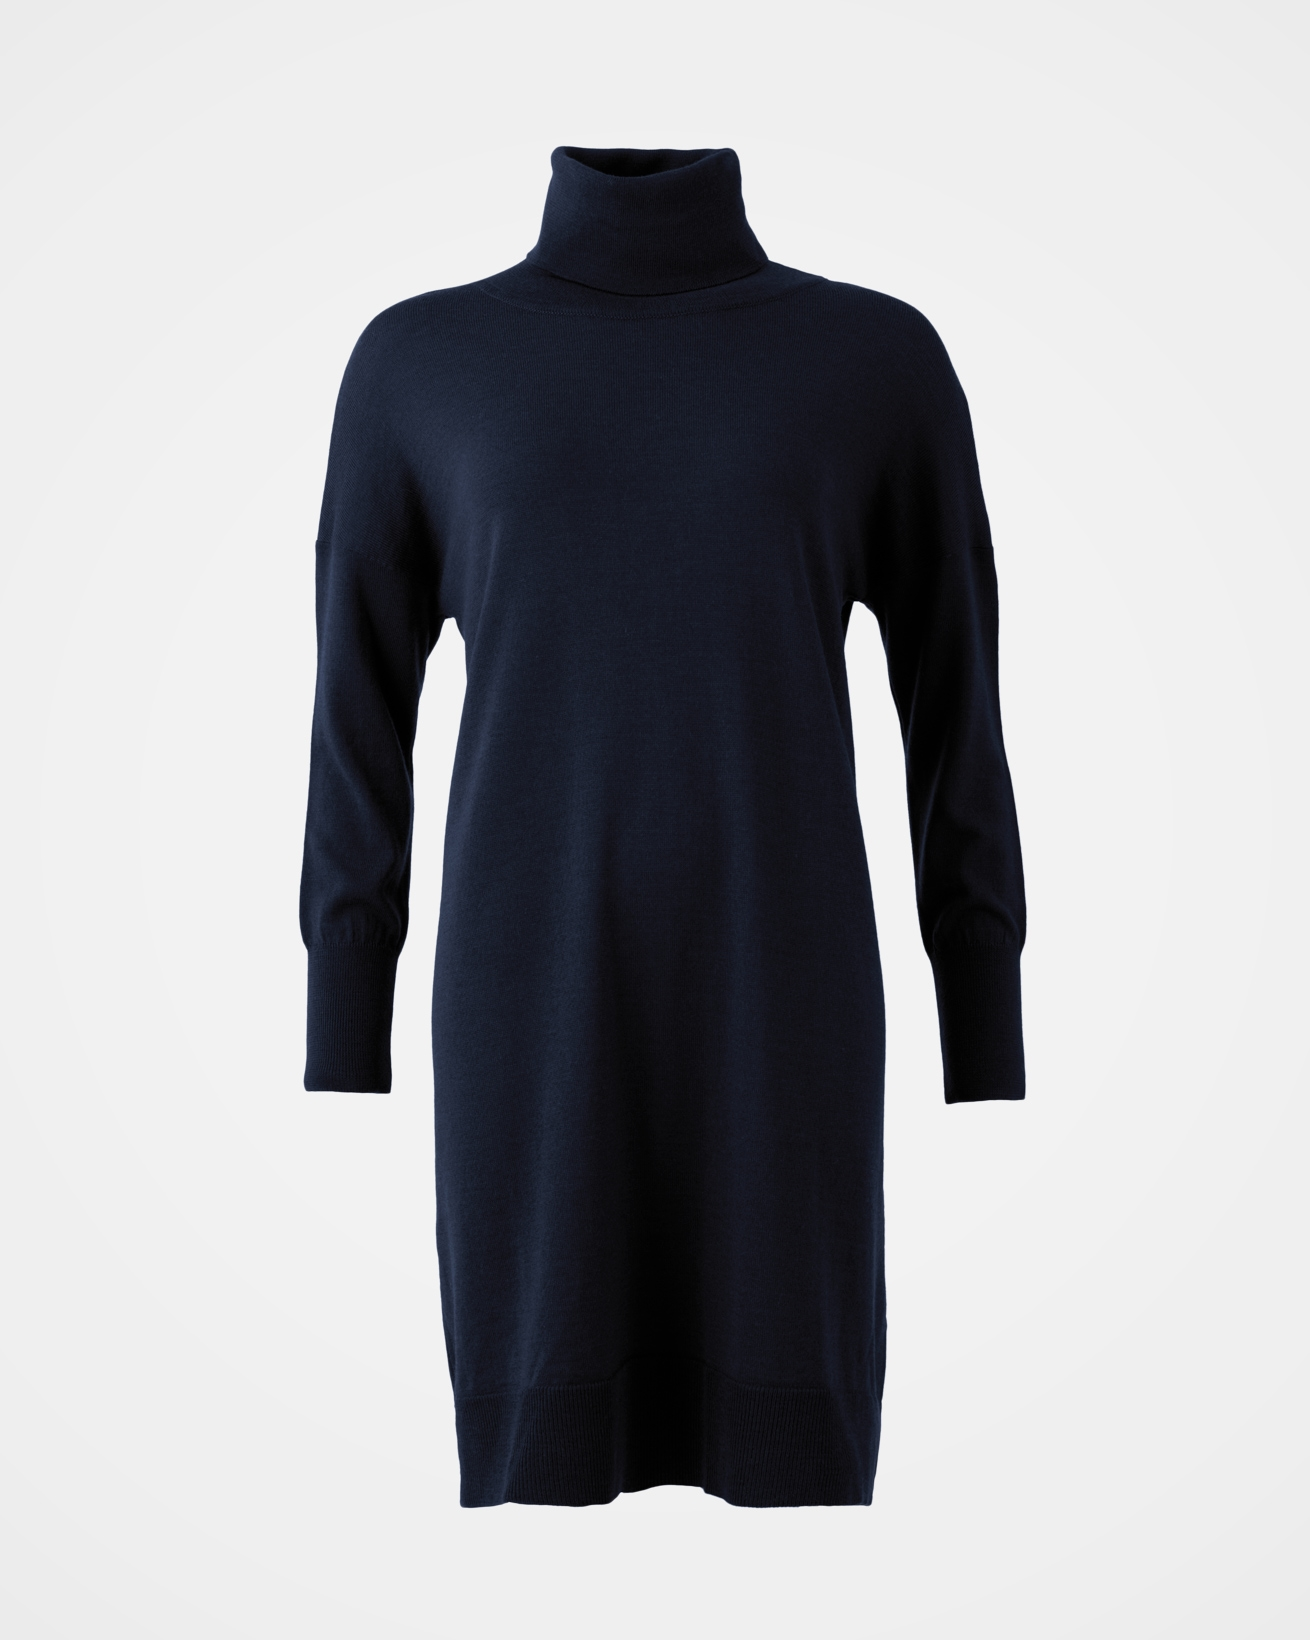 7515_slouchy-merino-roll-neck-dress_dark-navy_front.jpg